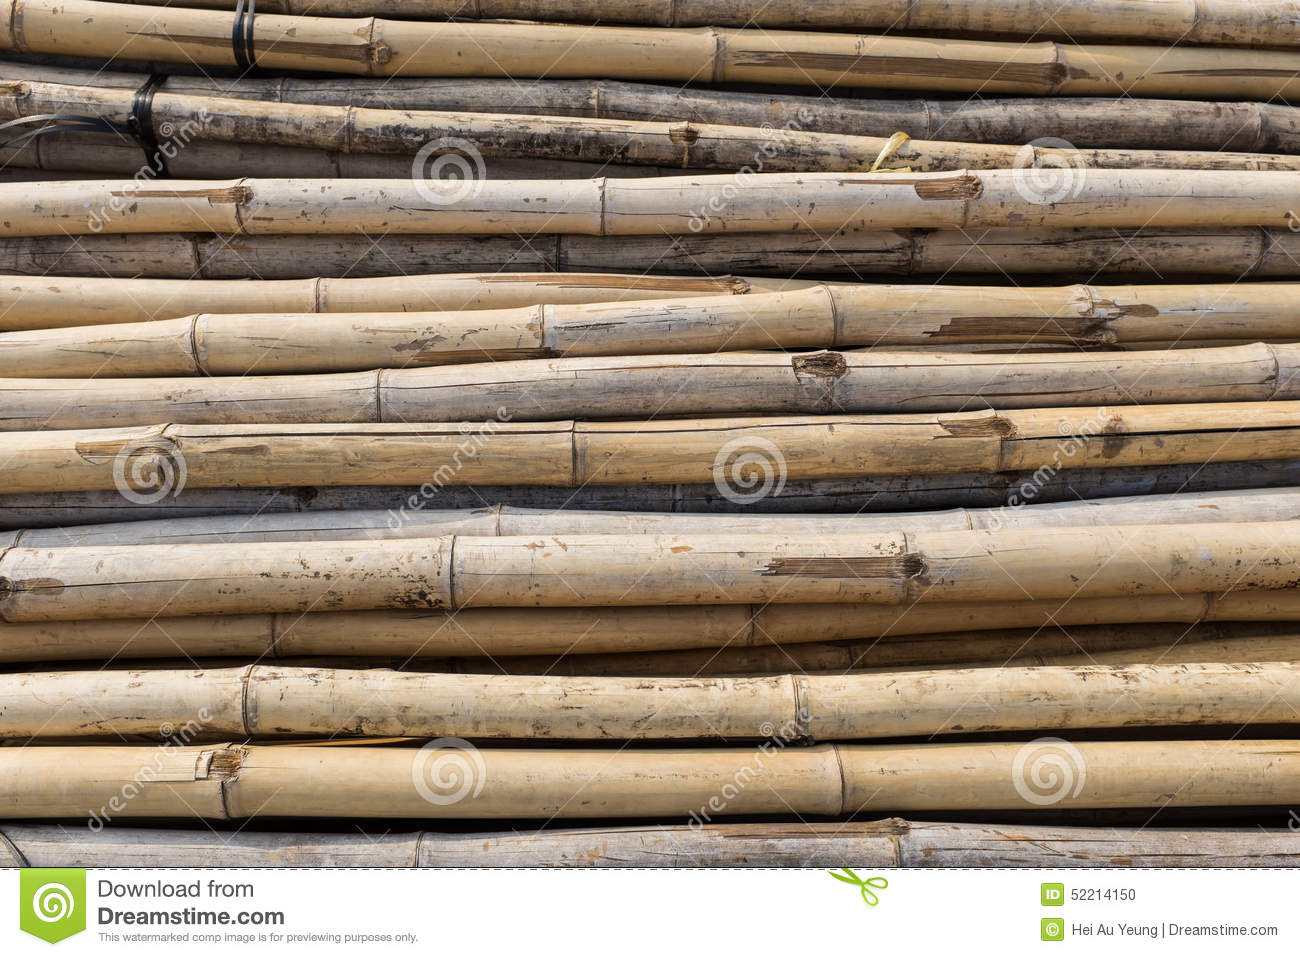 bamboo as an engineering material Special attention is focused on the research of natural composites (bamboo, cork etc) for medical engineering hybrid materials, manufacturability and productization of commonly used high-tech materials are in the focus of research.